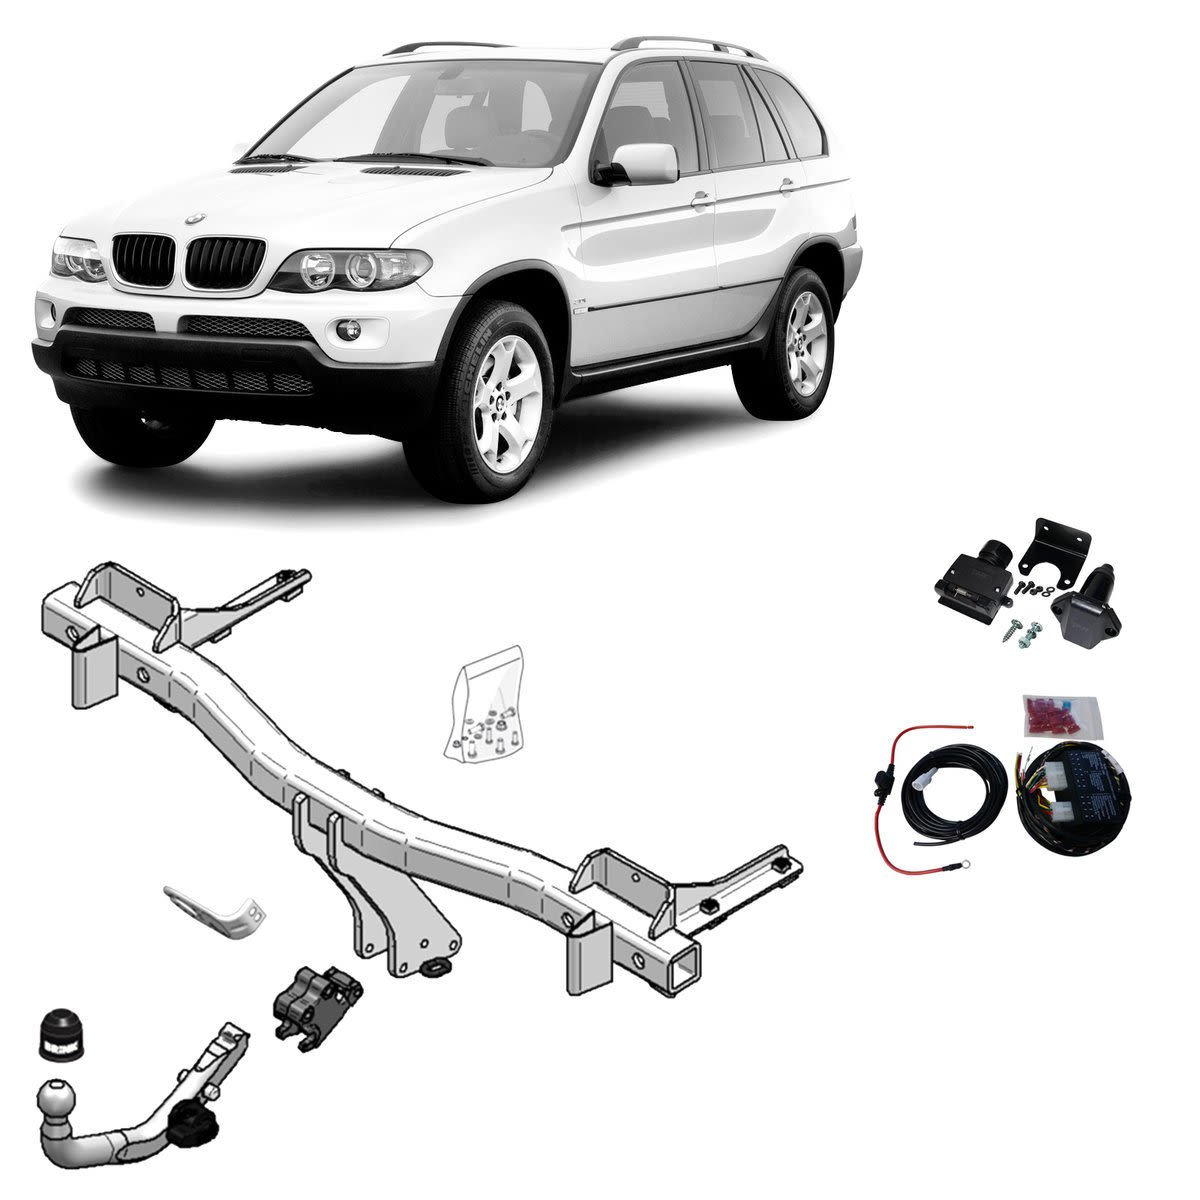 Brink Towbar to suit BMW X5 (11/2000 - 02/2007)